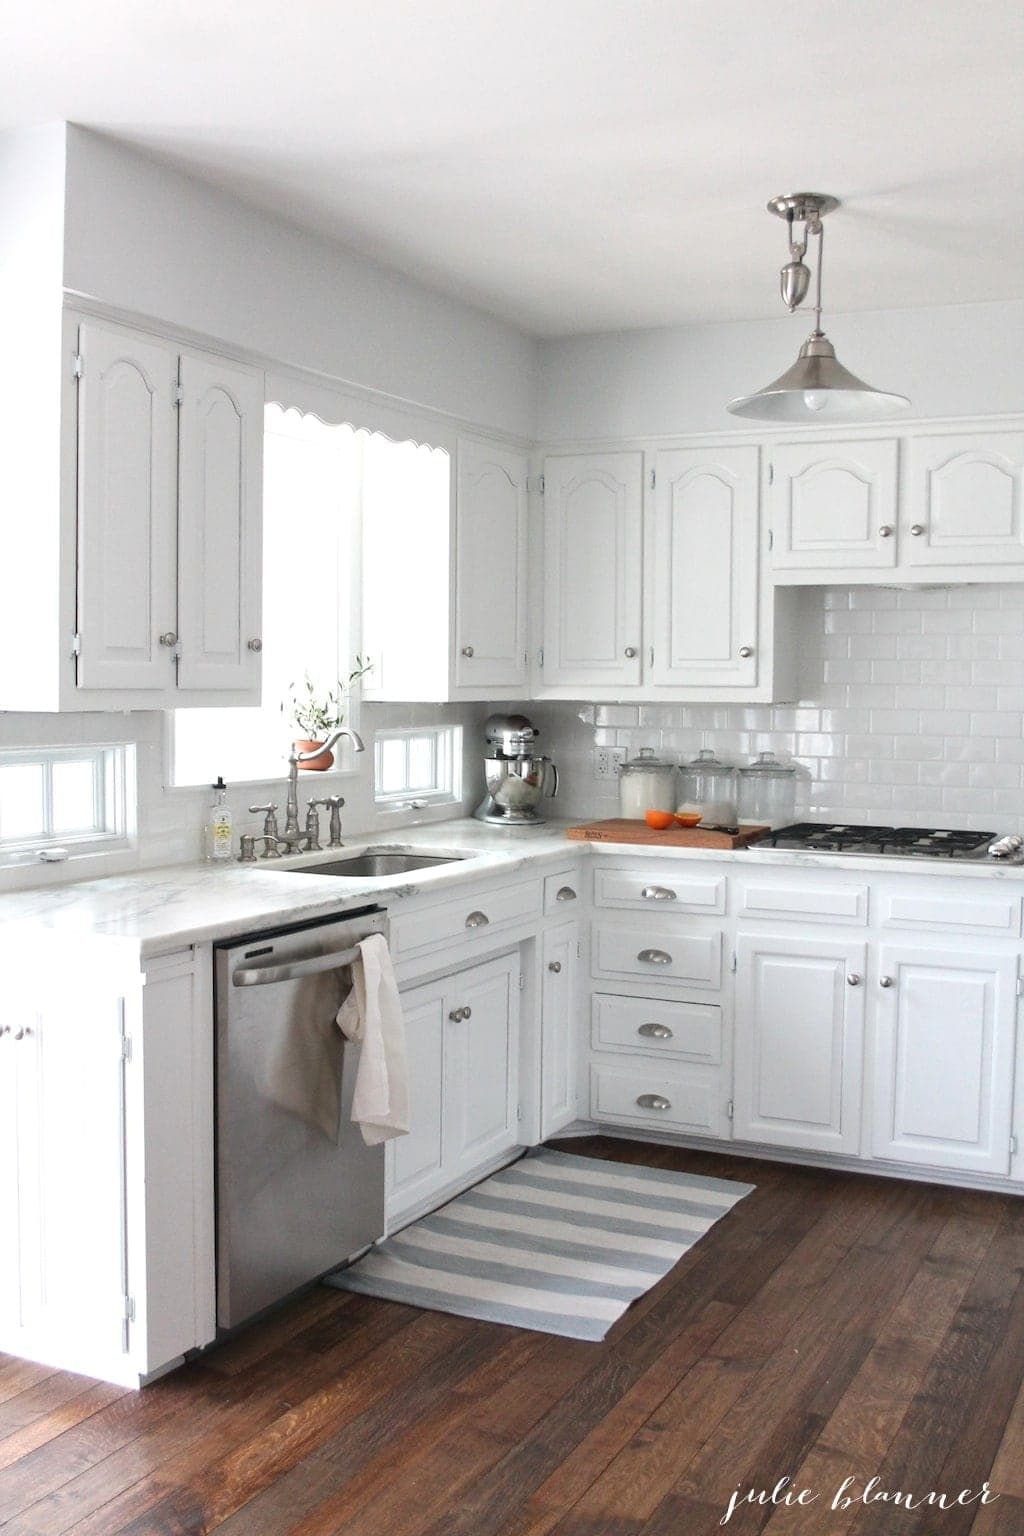 The risks benefits of marble countertops for Kitchen cabinets and countertops ideas